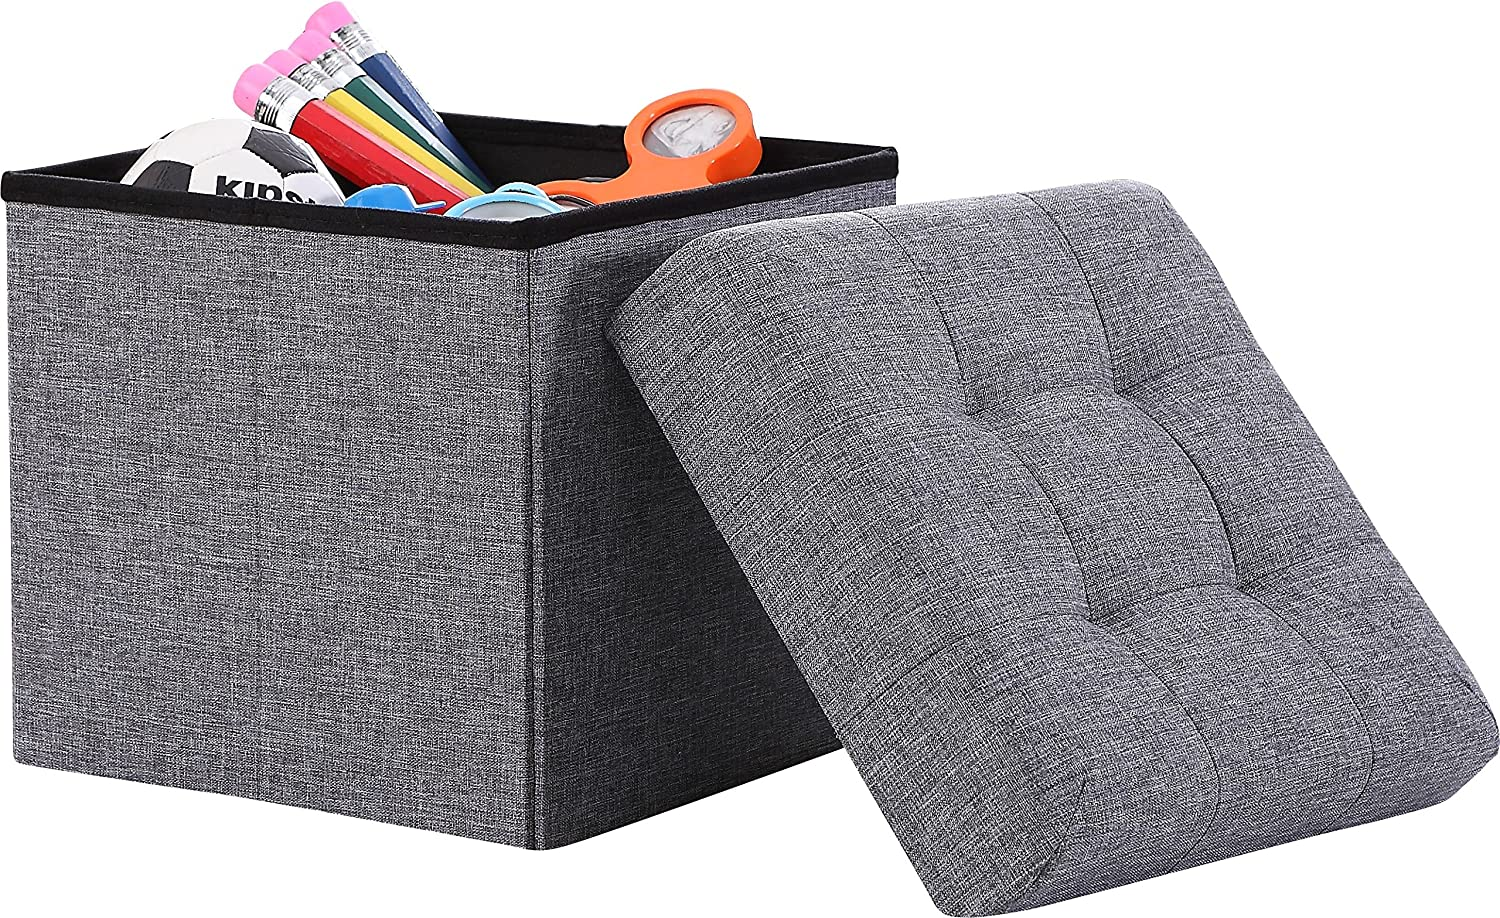 """Ornavo Home Foldable Tufted Linen Storage Ottoman Square Cube Foot Rest Stool/Seat - 15"""" x 15"""" x 15"""" (Grey): Kitchen & Dining"""